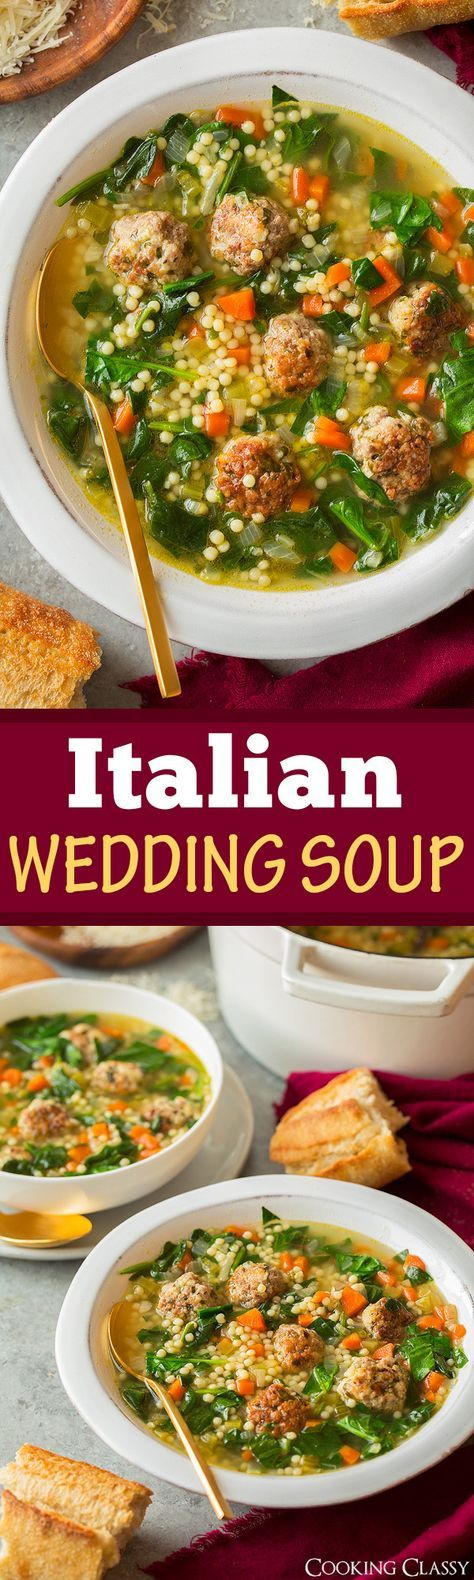 Italian Wedding Soup - Cooking Classy